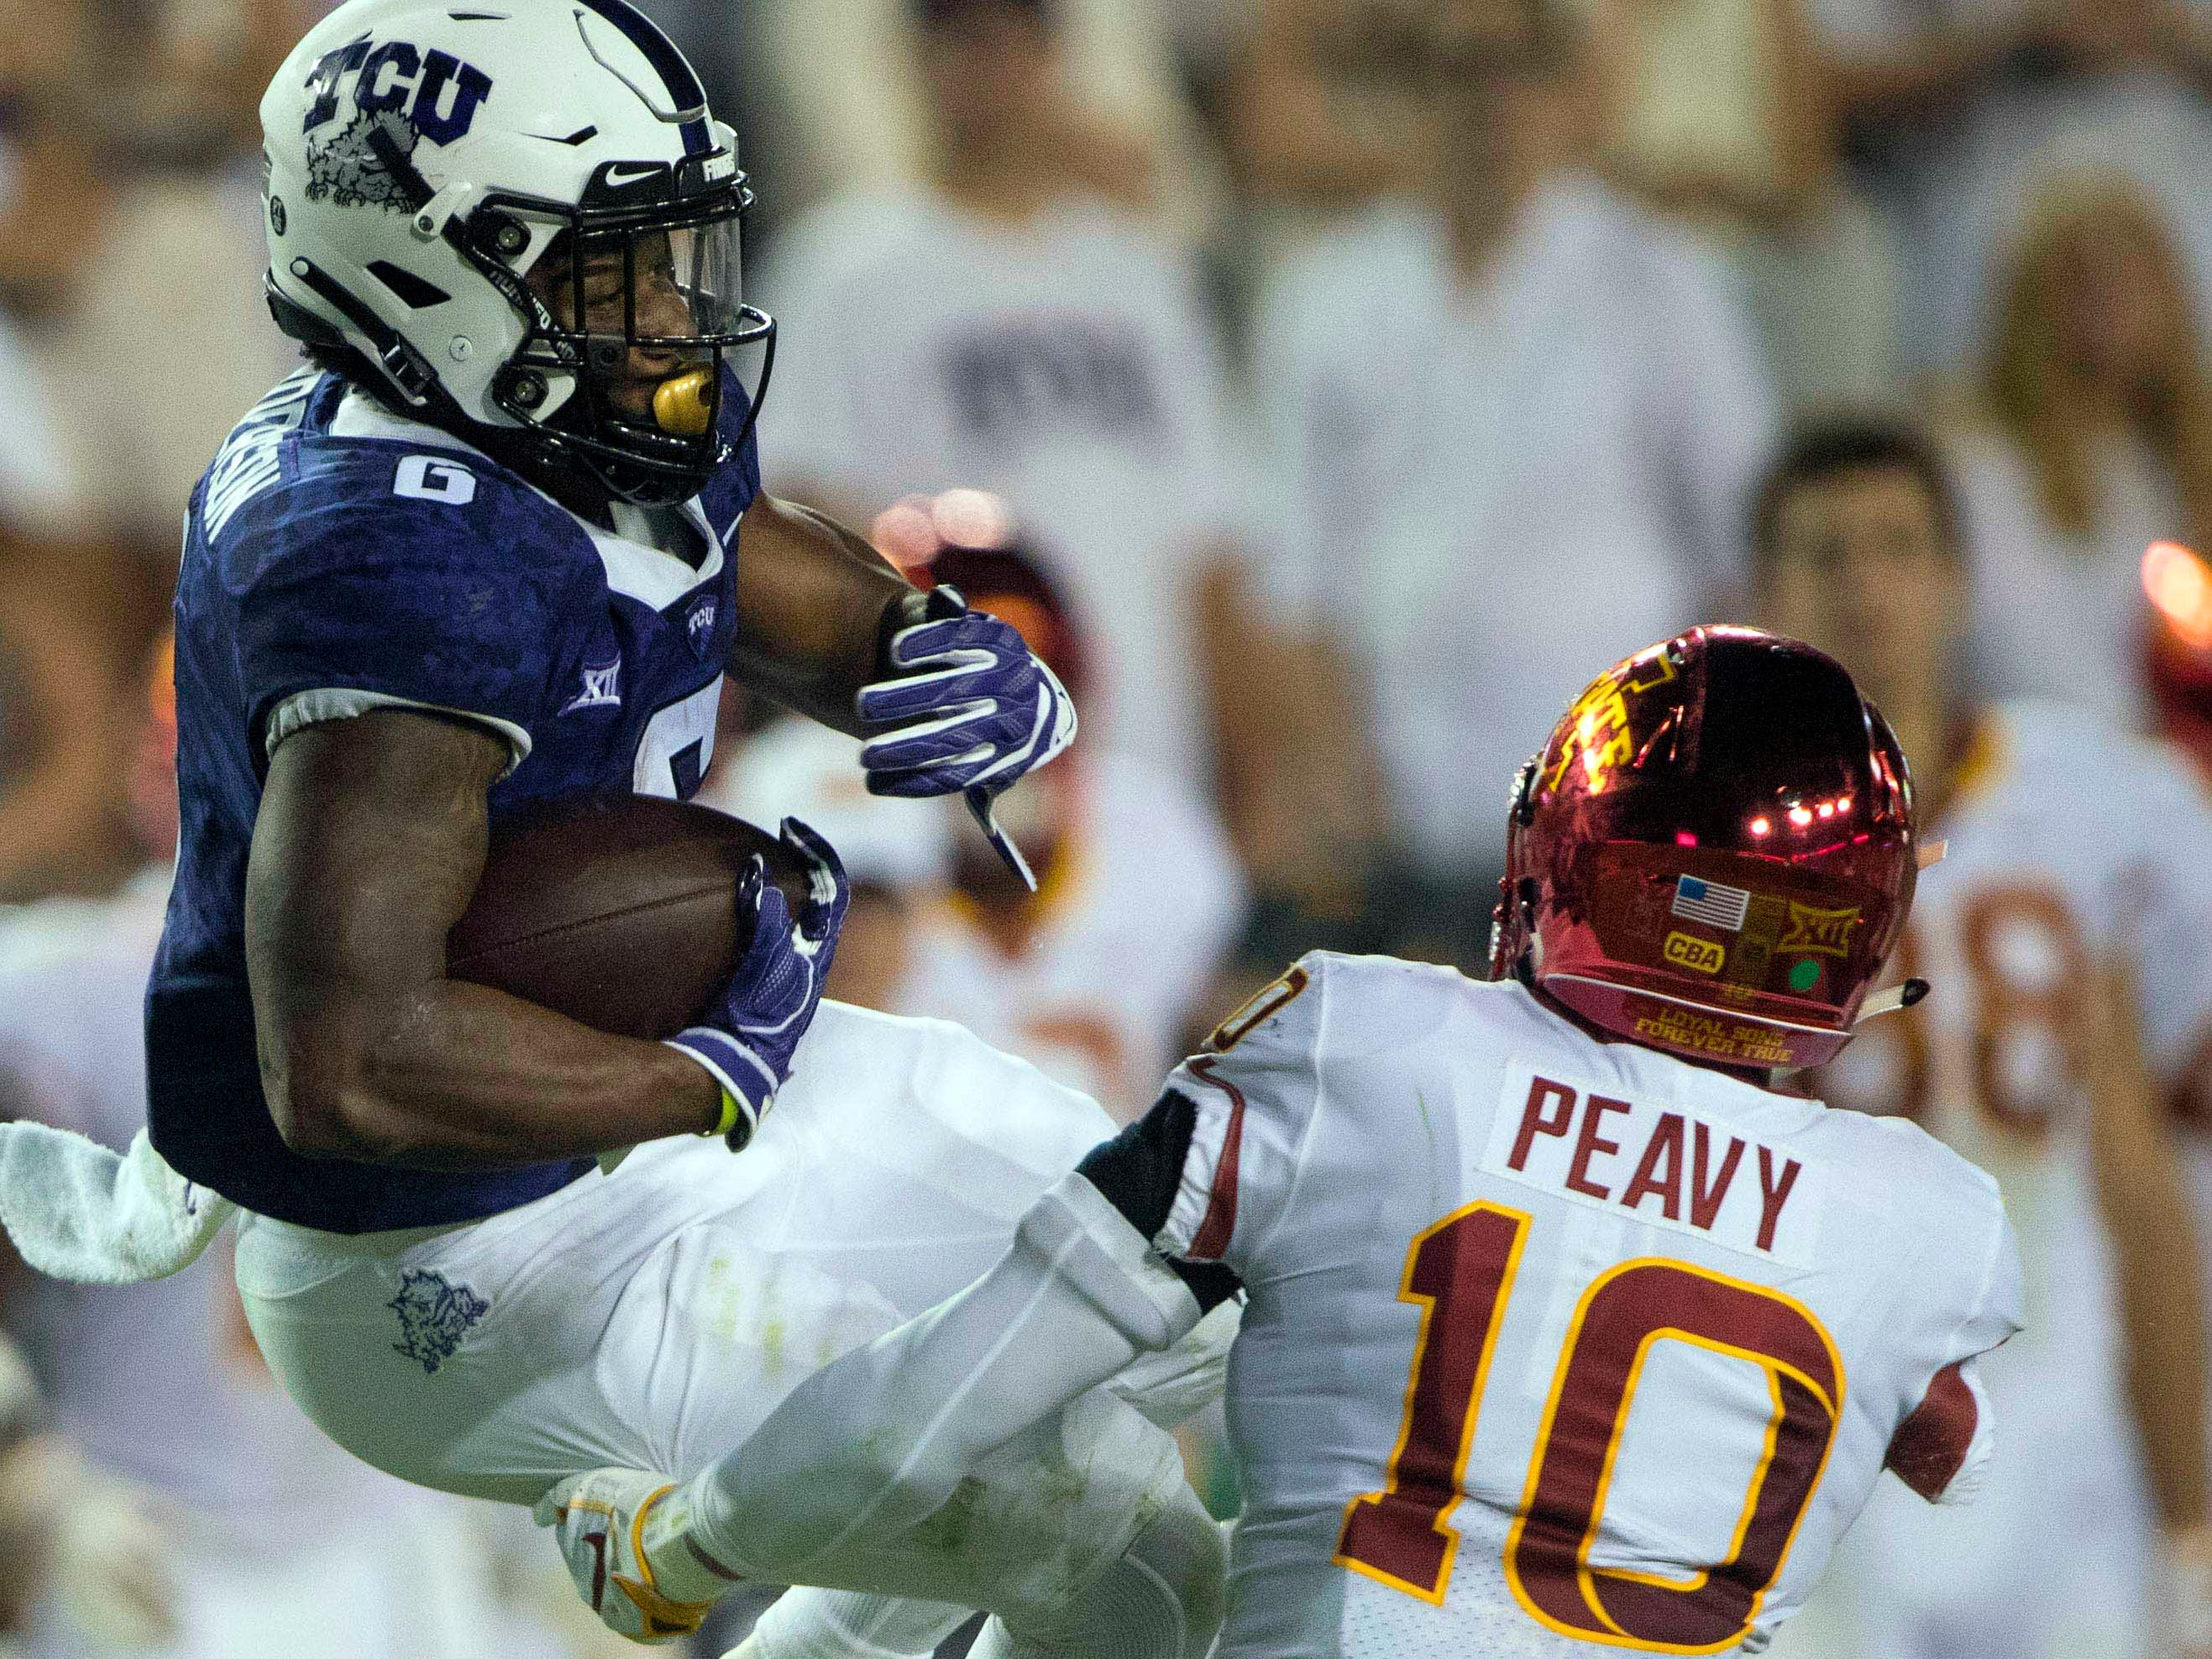 TCU Horned Frogs running back Darius Anderson (6) is brought down by Iowa State Cyclones defensive back Brian Peavy (10) during the second half at Amon G. Carter Stadium.